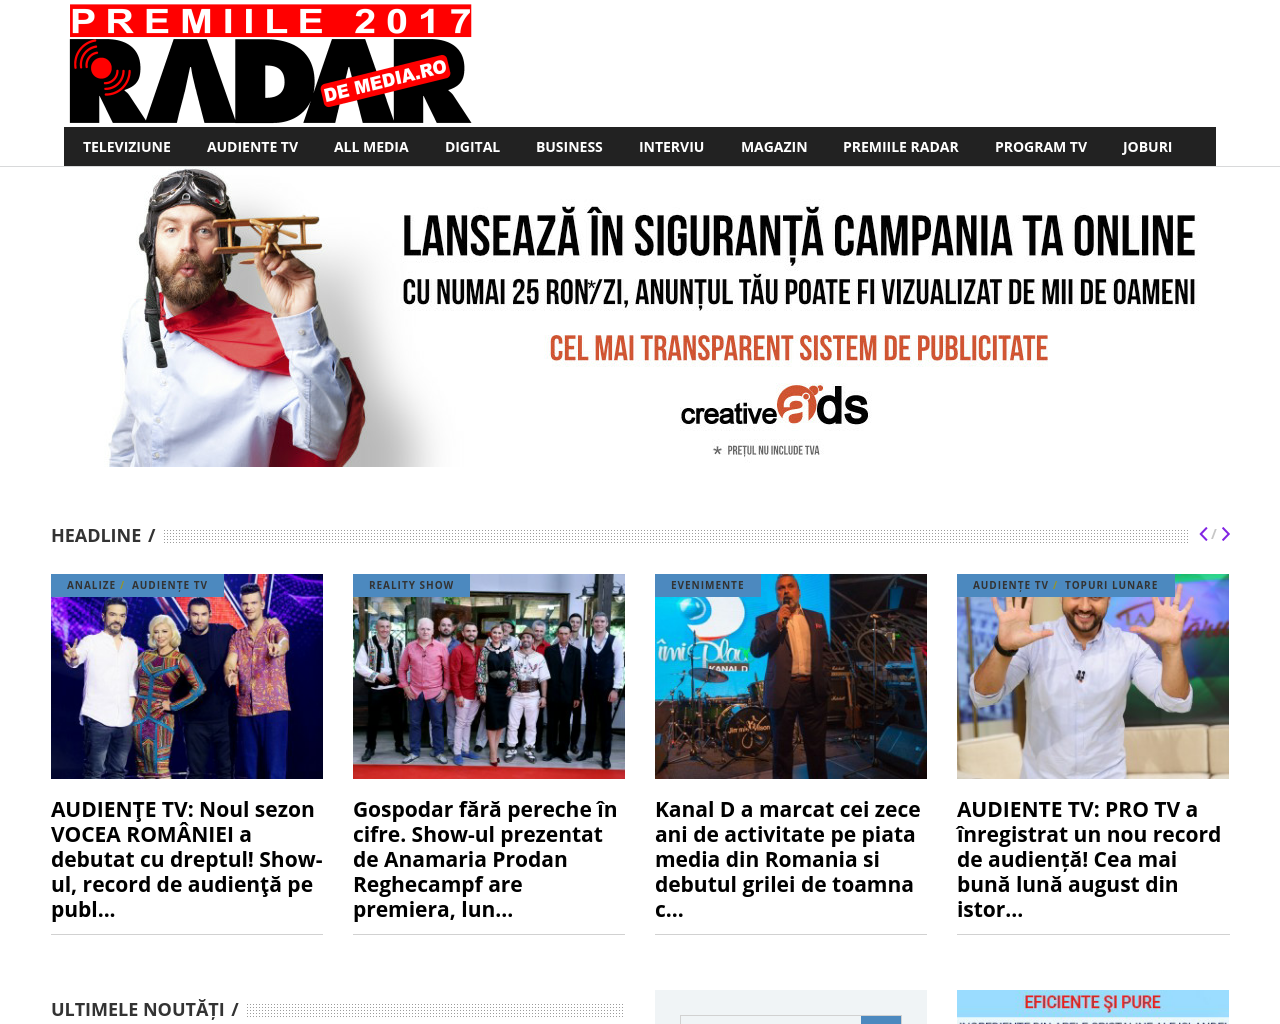 Radar-de-Media.ro-Advertising-Reviews-Pricing